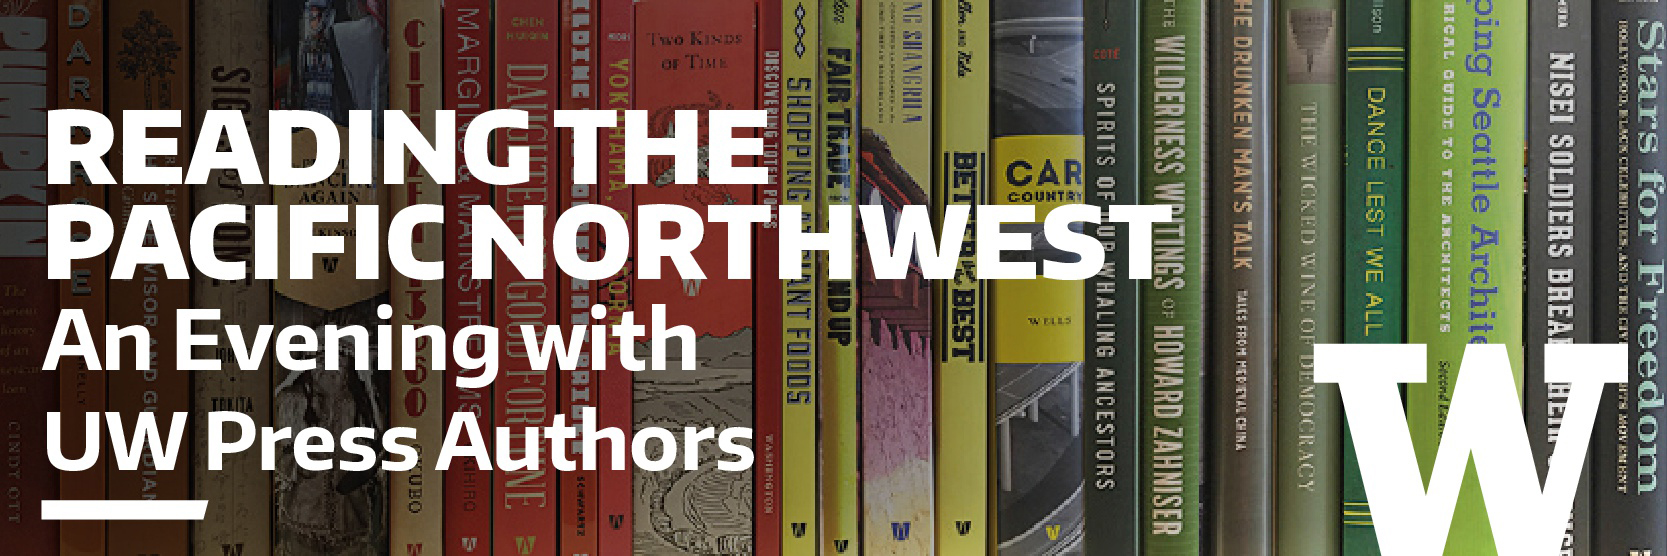 Reading the Pacific Northwest: An Evening with UW Press Authors